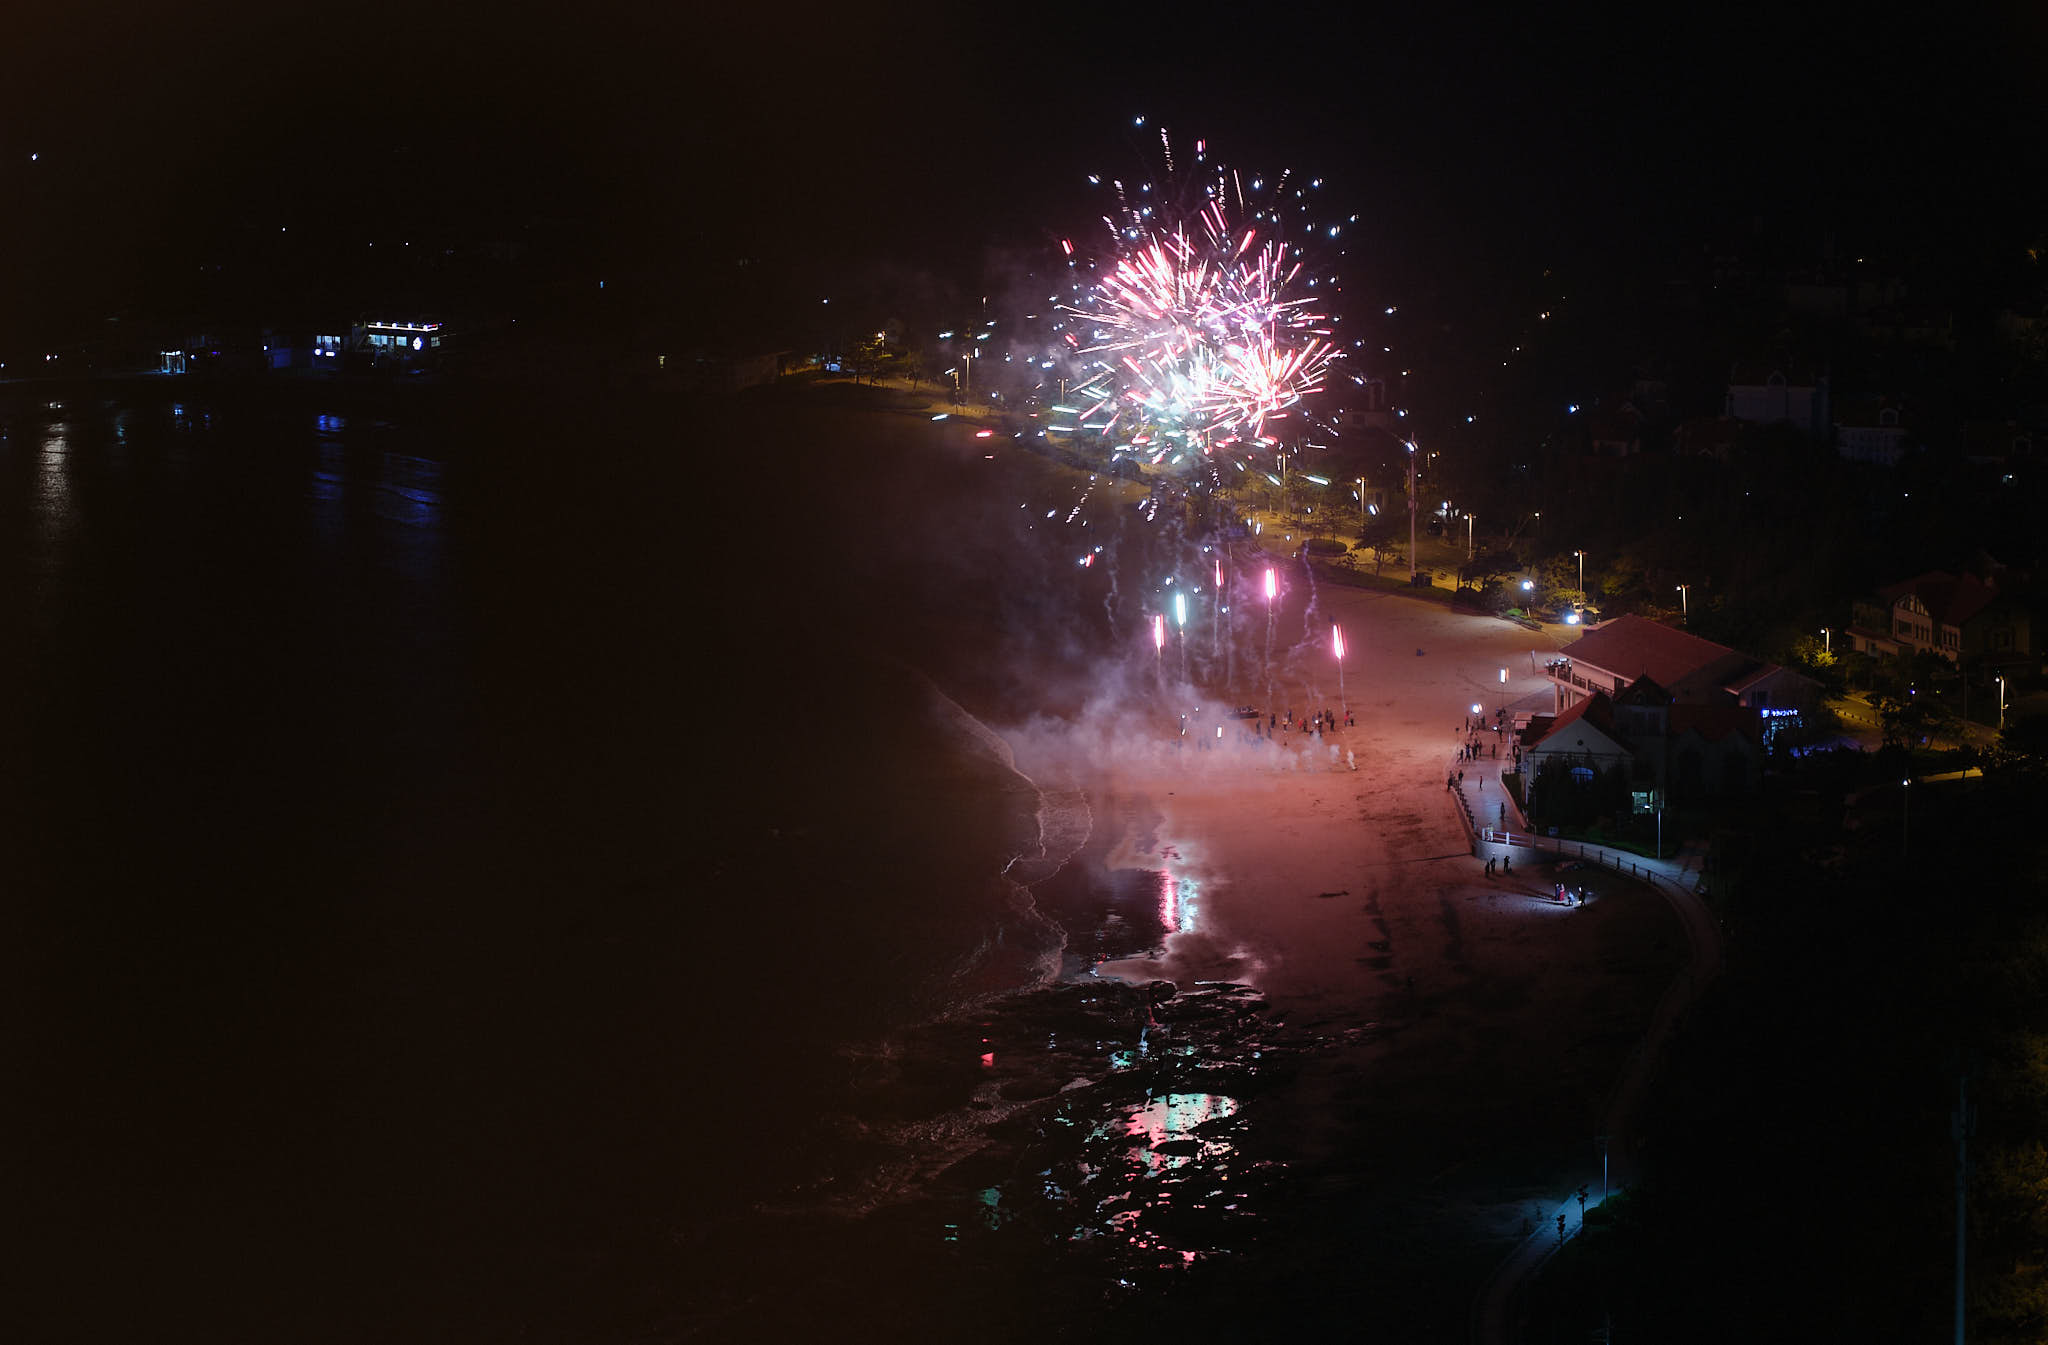 Fireworks at night in Qingdao